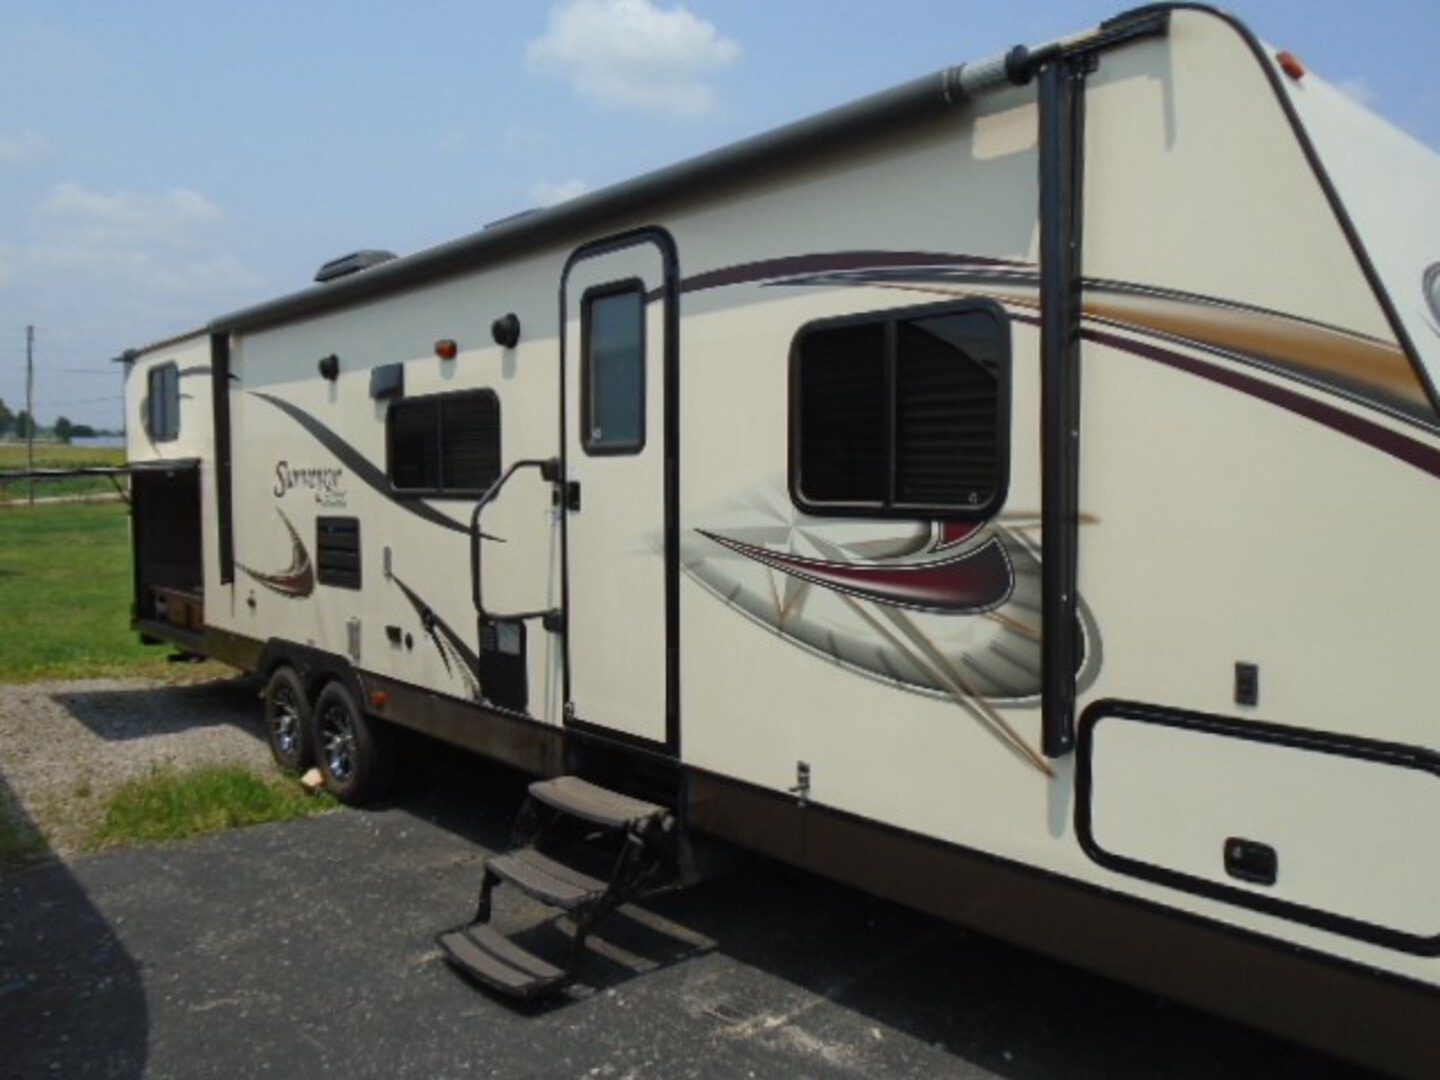 Used, 2012, Forest River, Surveyor Select SV 305, Travel Trailers